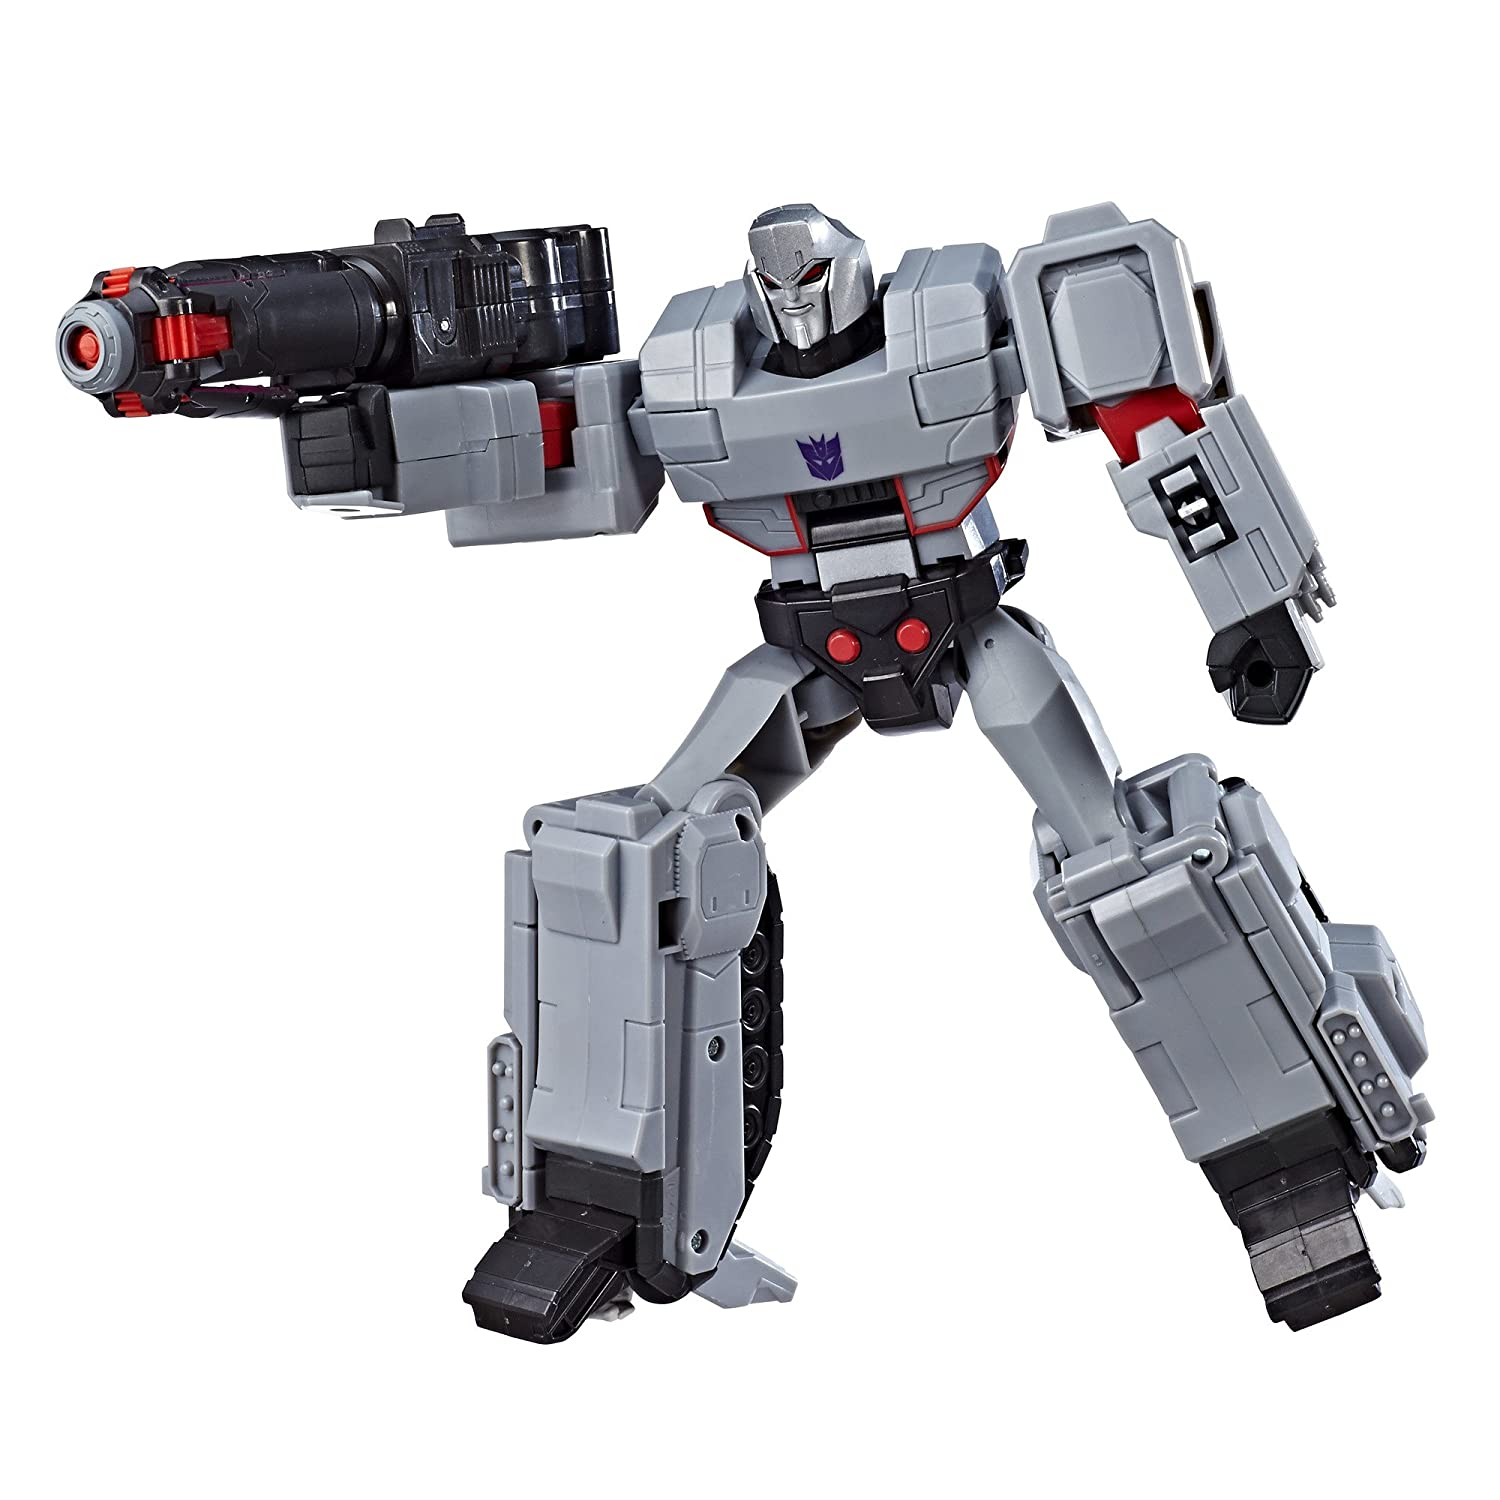 """Transformers Toys Cyberverse Action Attackers Ultimate Class Megatron Action Figure - Repeatable Fusion Mega Shot Action Attack - for Kids Ages 6 & Up, 11.5"""""""